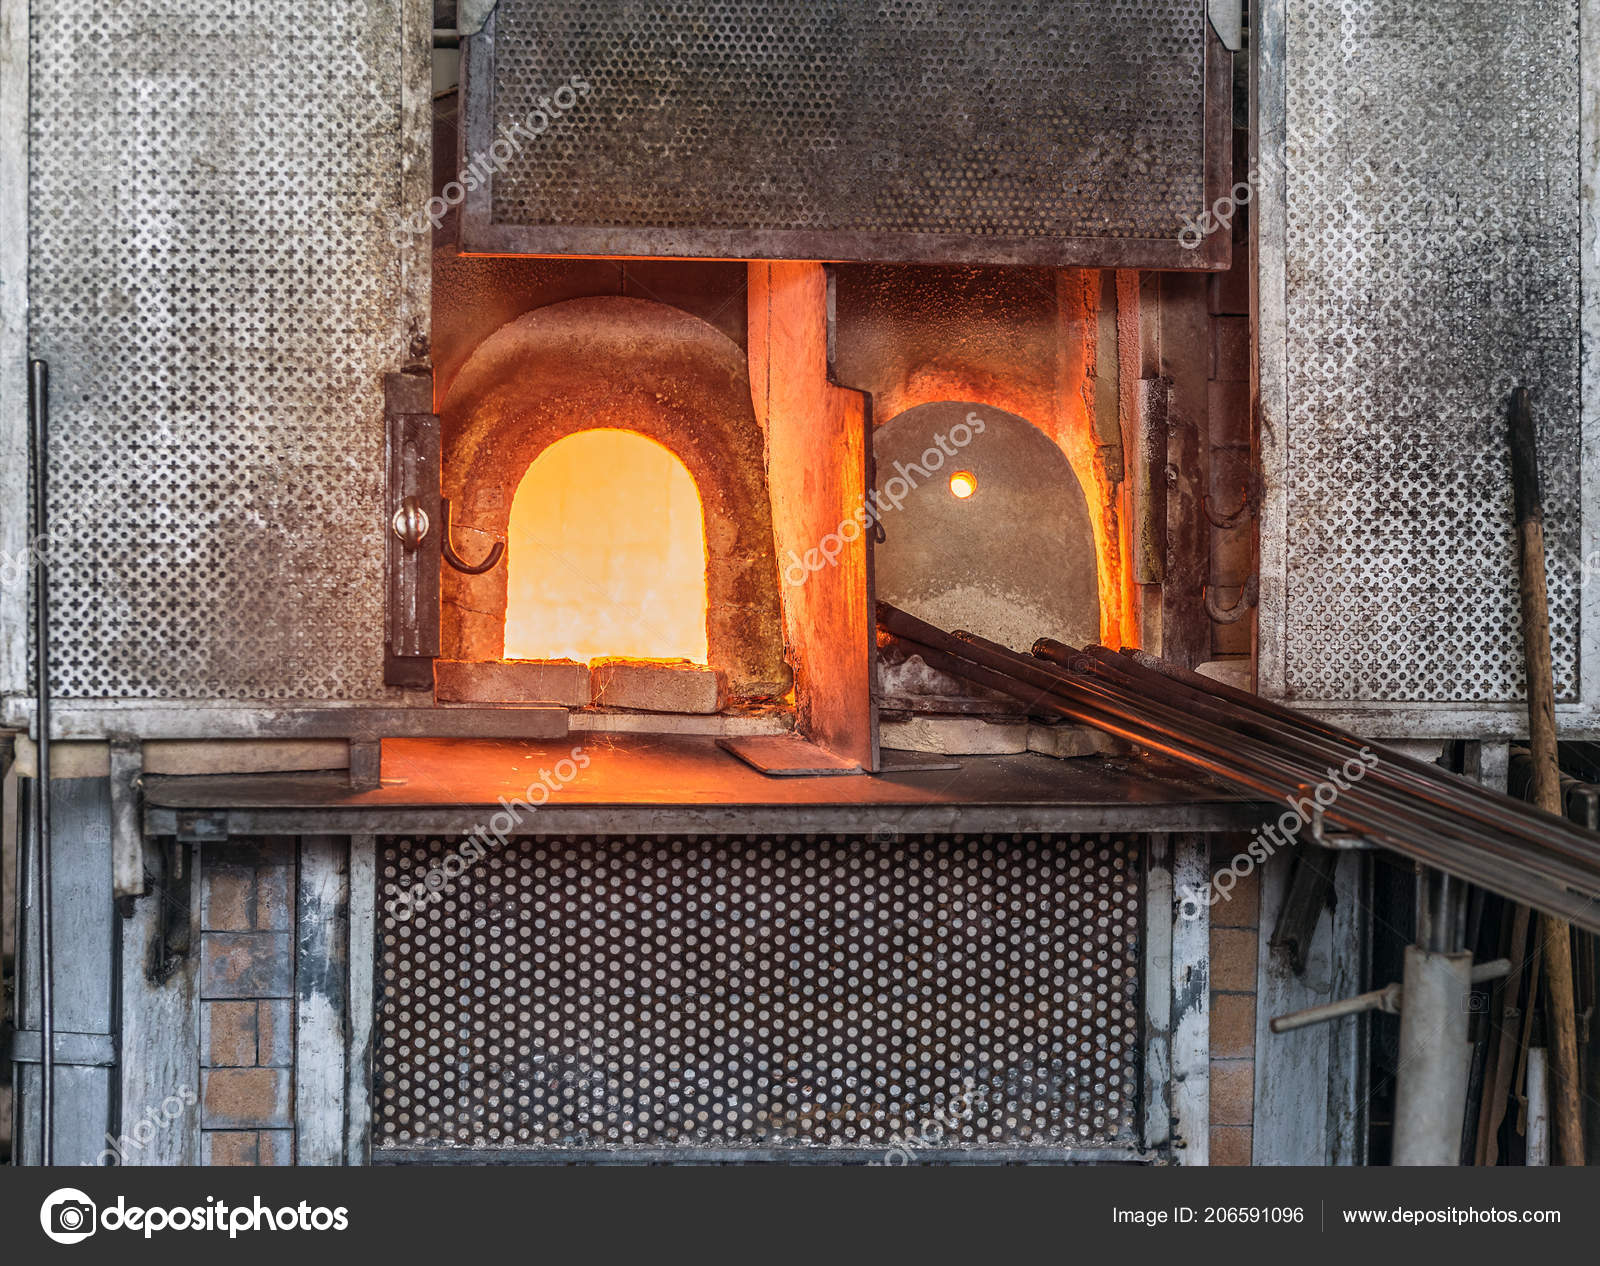 Murano Glass Factory.Italy Venice Murano Glass Factory Special Glass Blowing